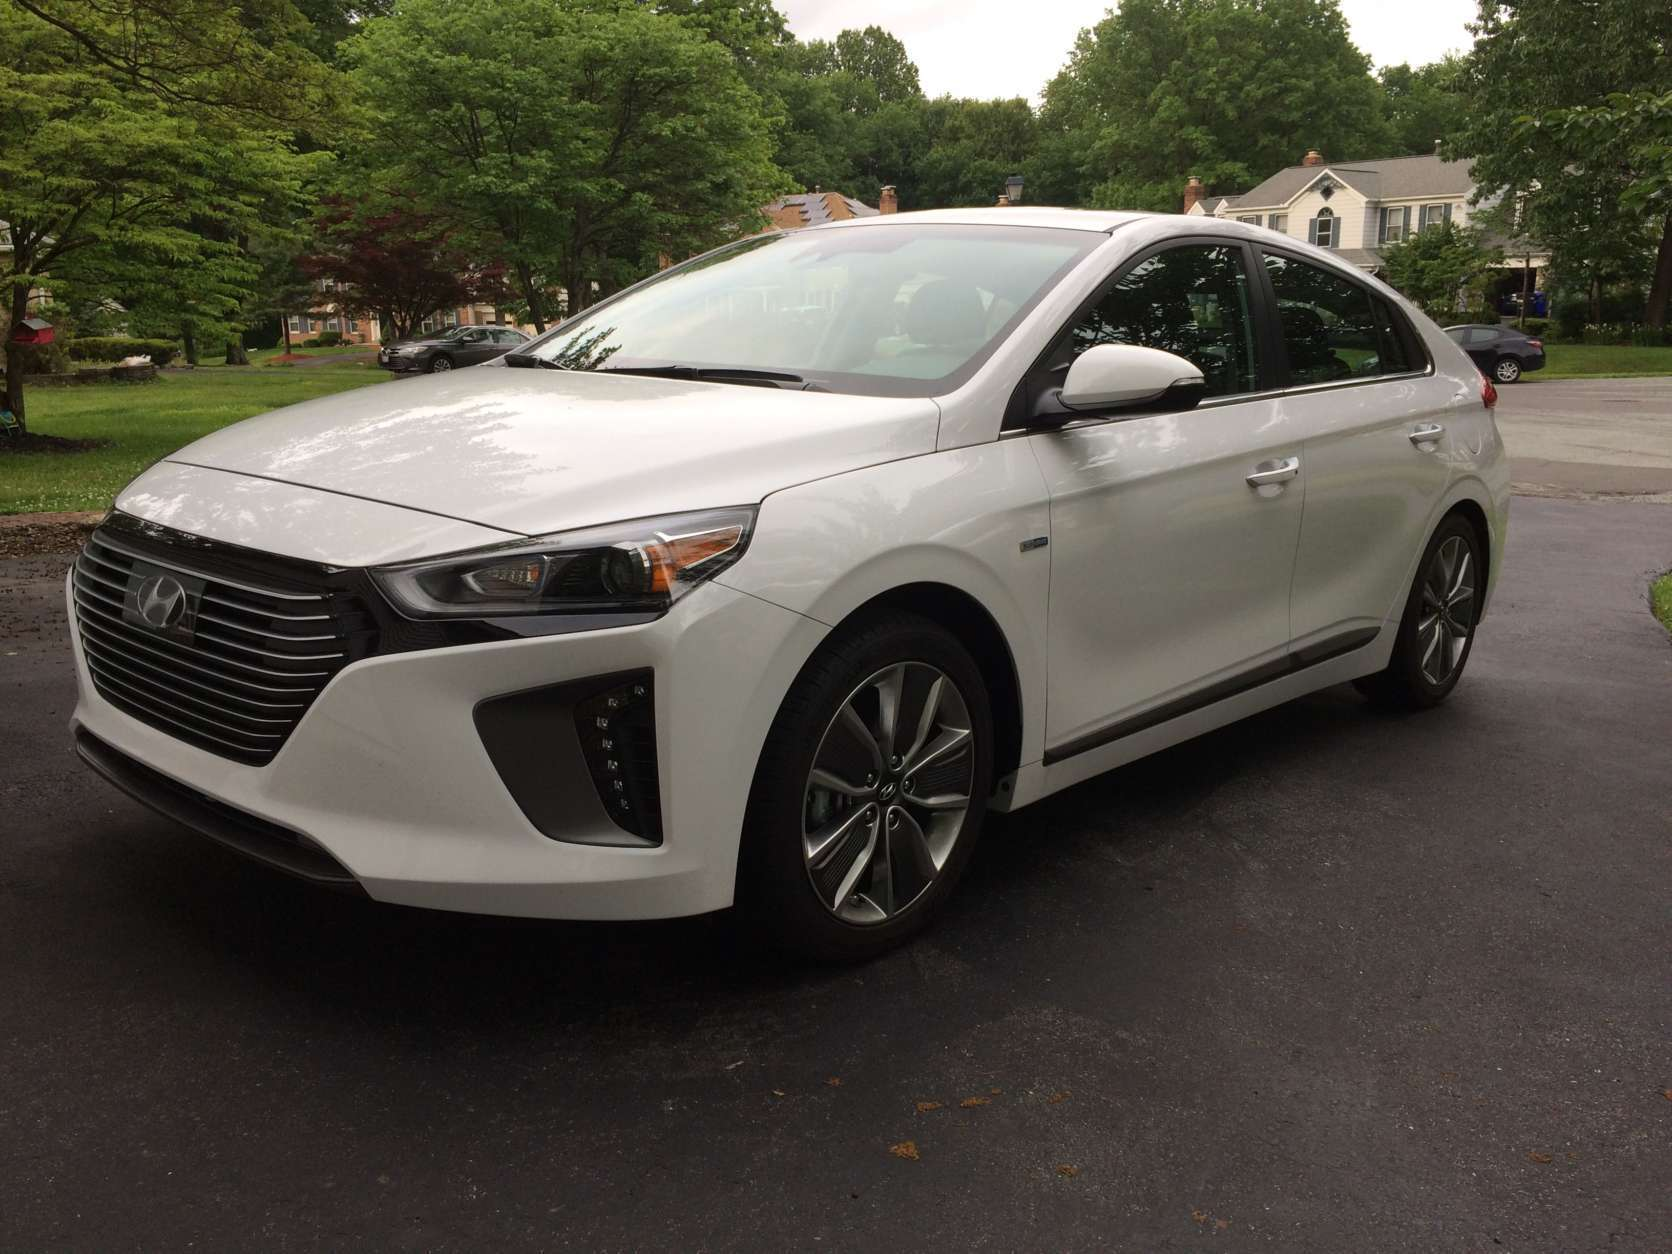 The hybrid version of the Hyundai Ioniq is the most cost-effective, with prices starting around $22,500. (WTOP/Mike Parris)